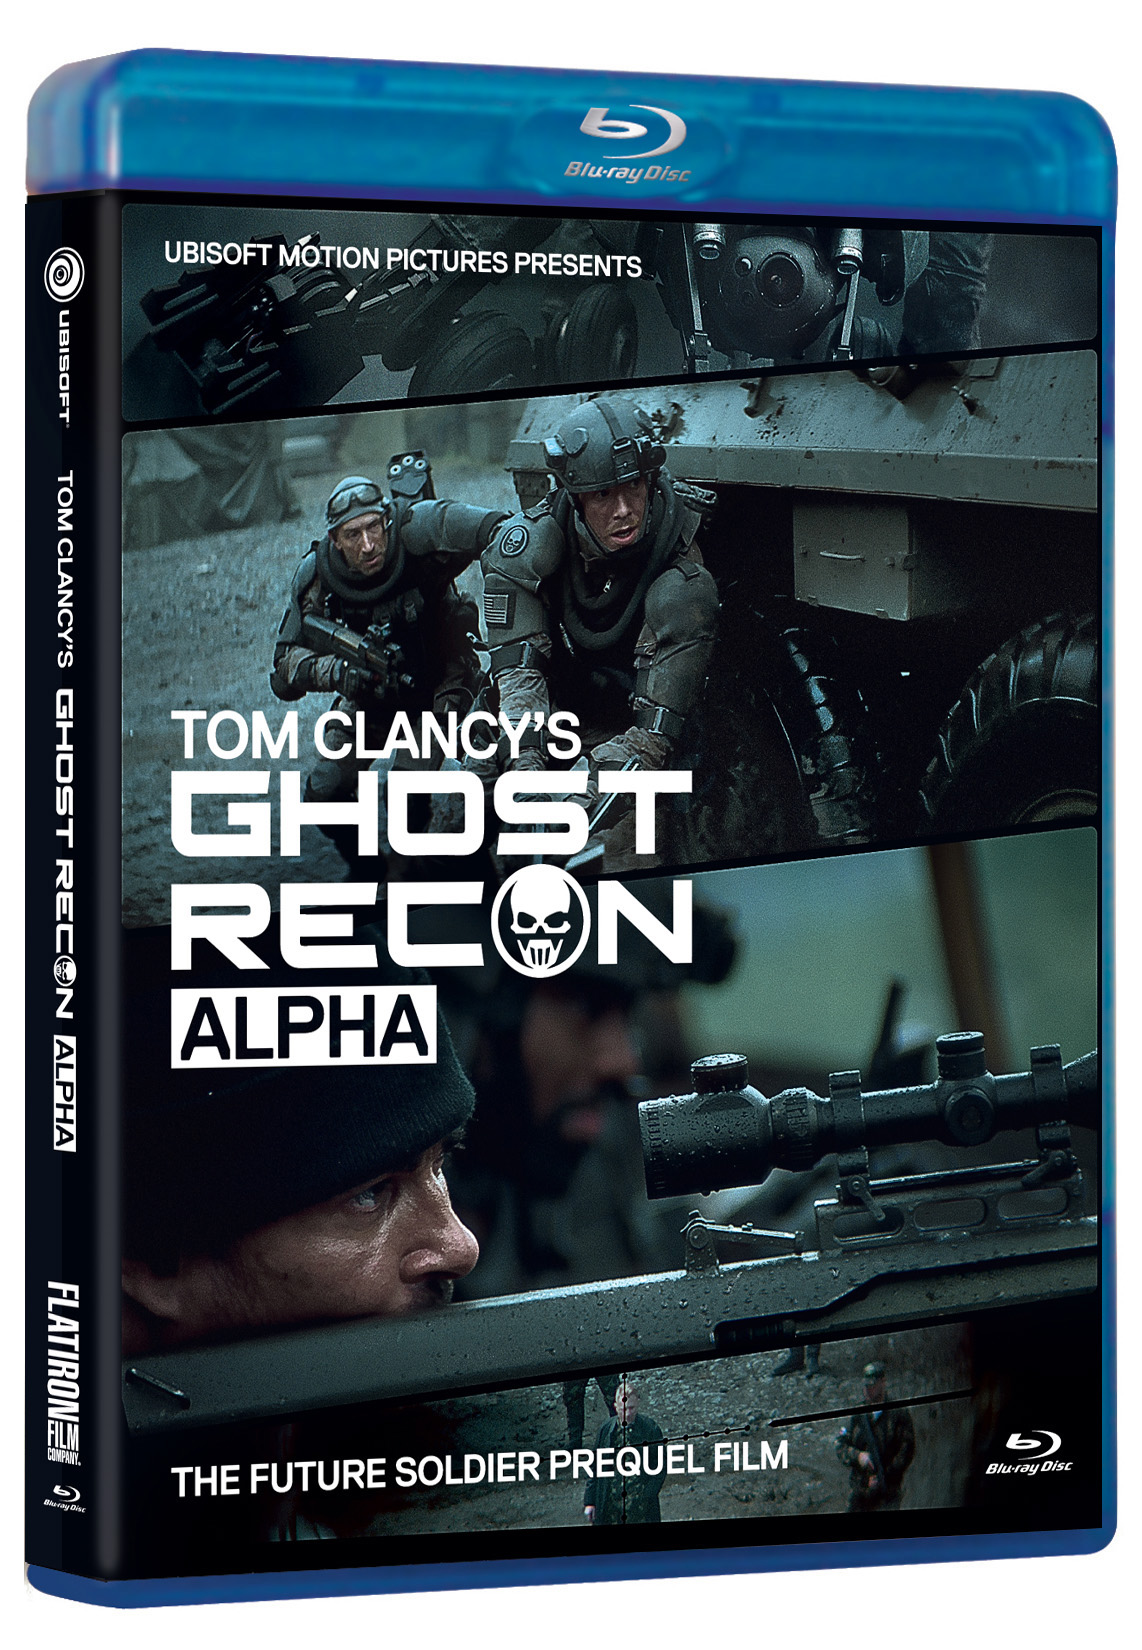 Ghost Recon Alpha Blu Ray Review